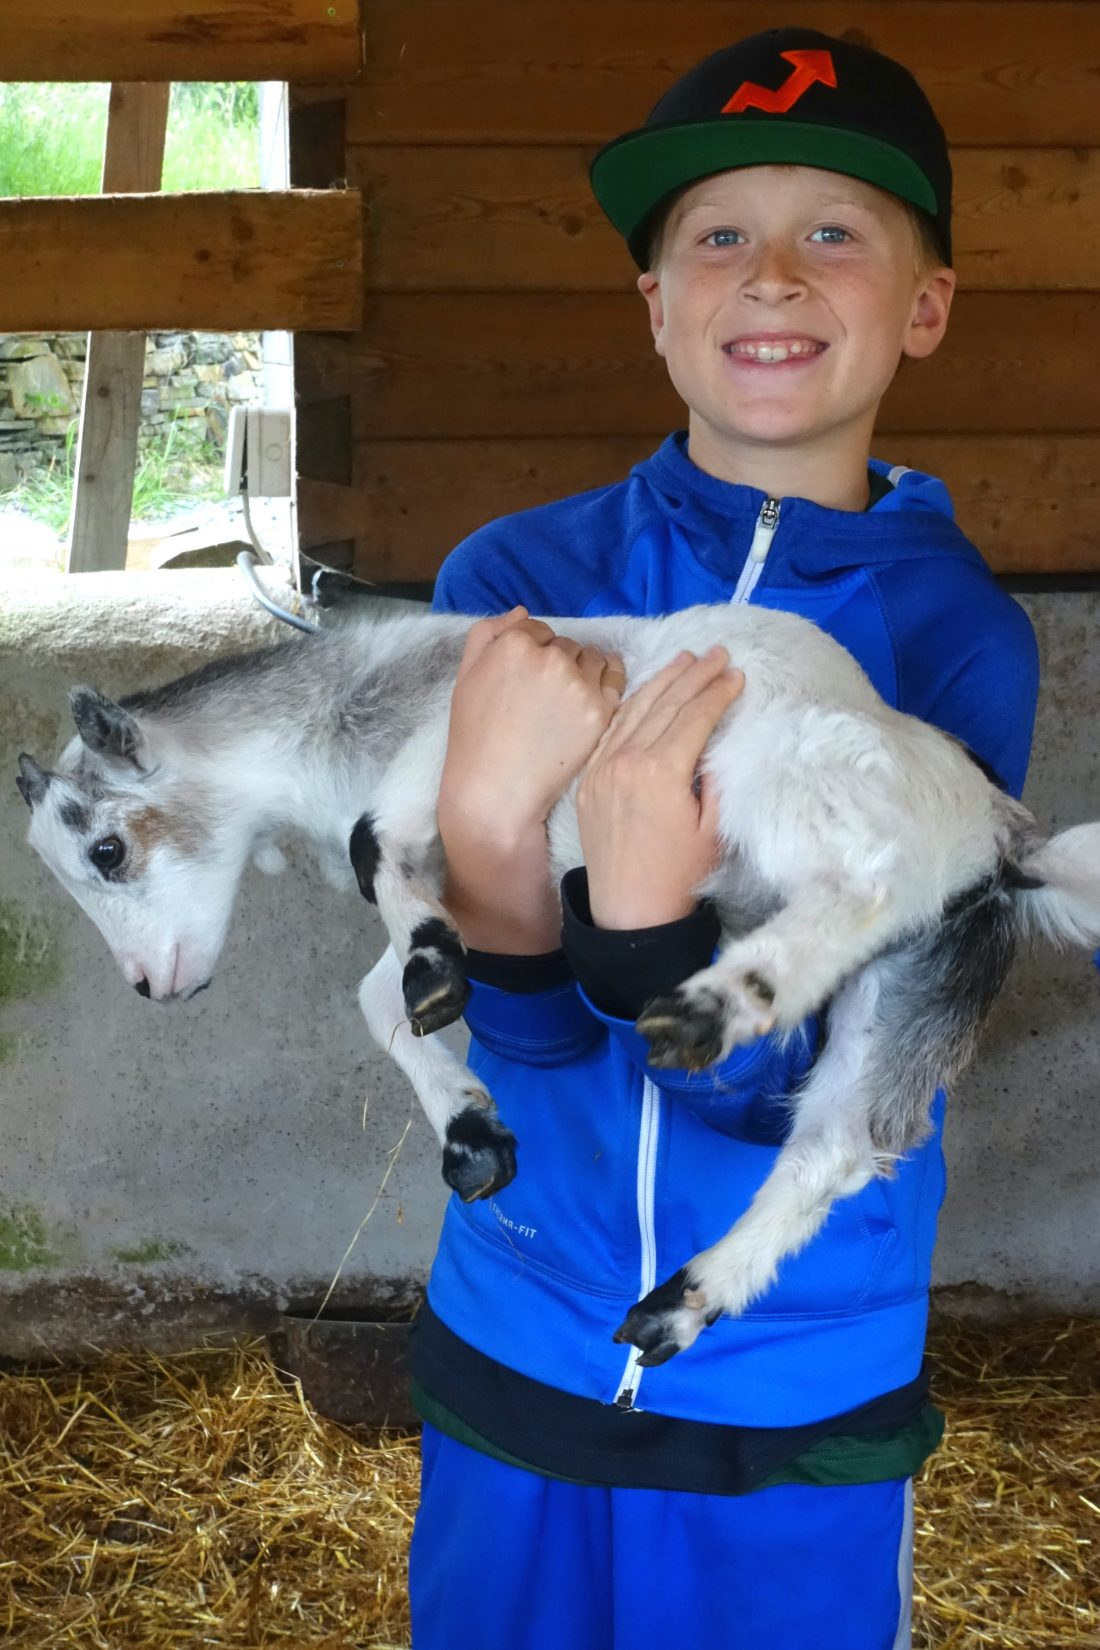 Baby goats at Blueberry Hill Farm